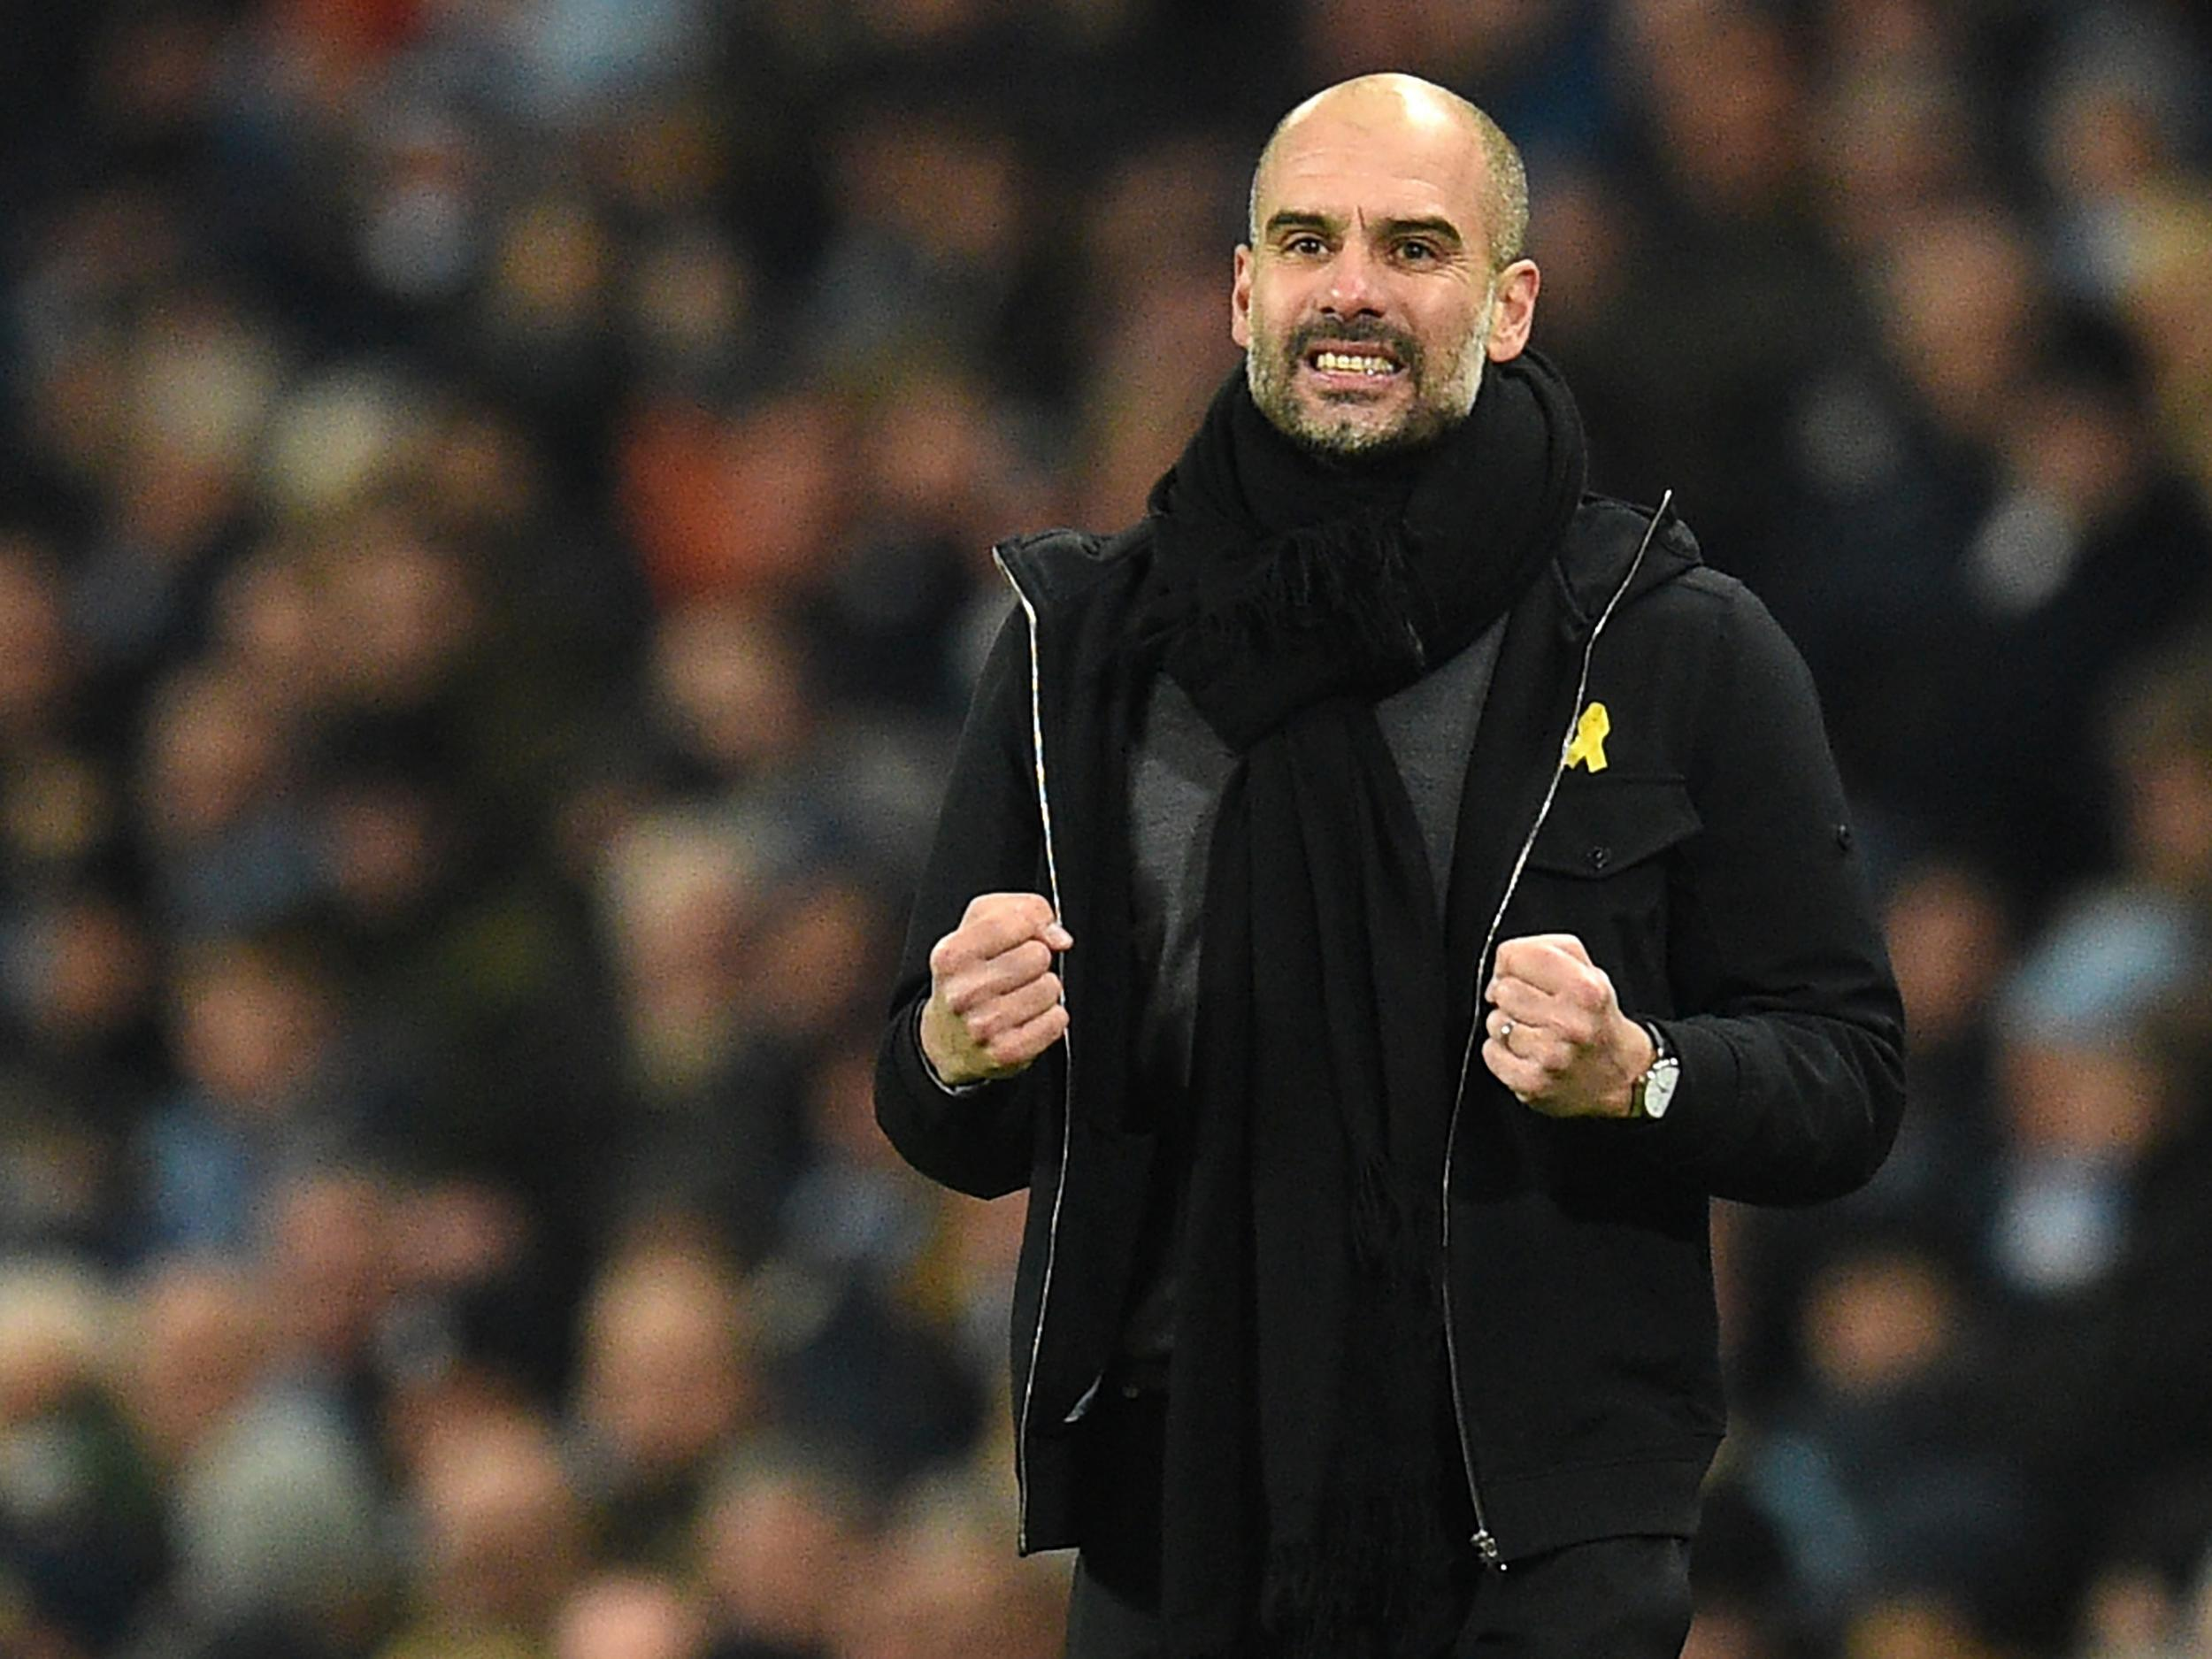 Manchester City manager Pep Guardiola hails his side's mentality after comfortable win over Newcastle